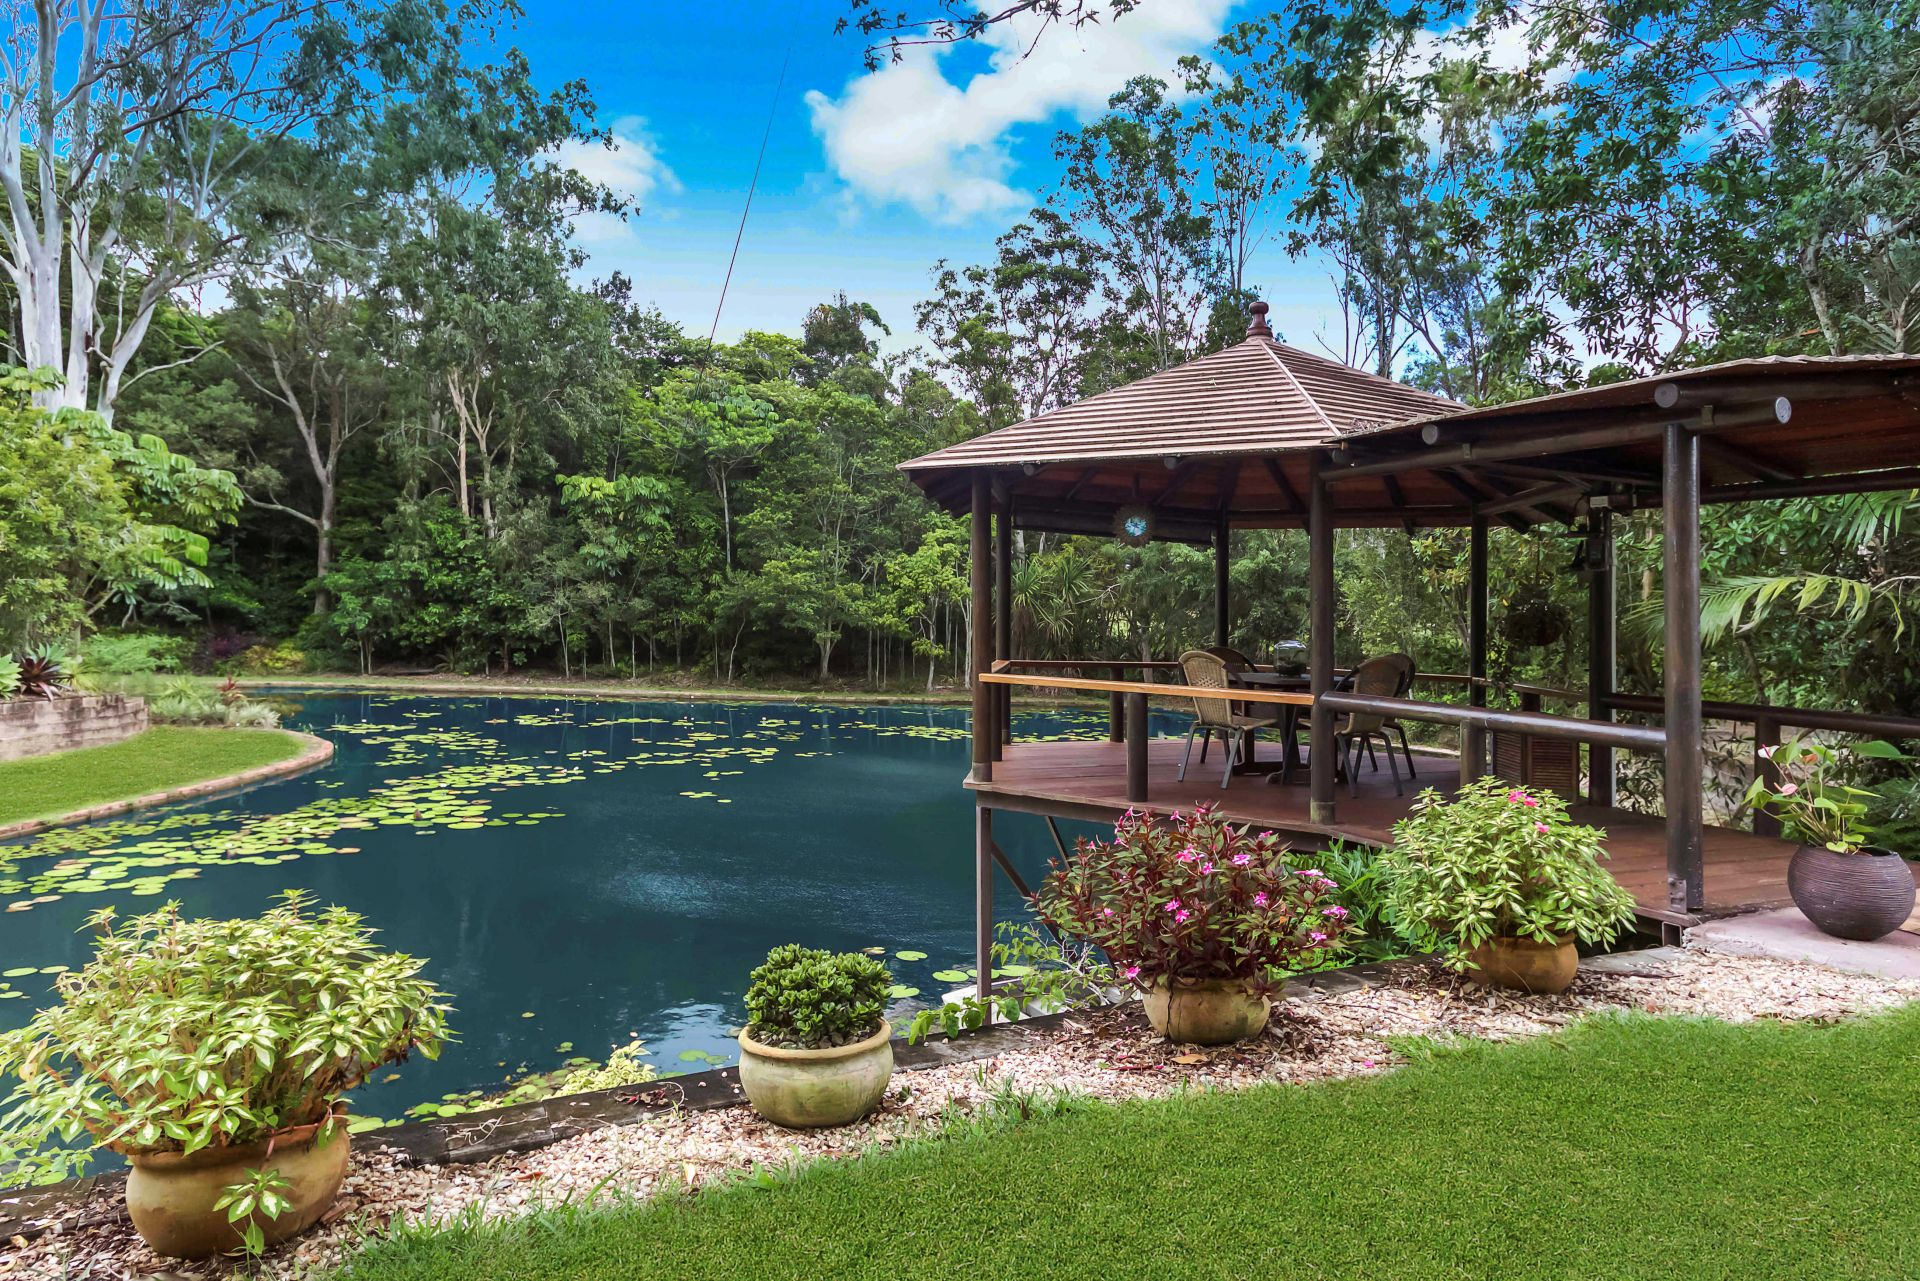 Additional photo for property listing at Idyllic tablelands rainforest retreat with breathtaking grounds   Queensland,4883 Australie